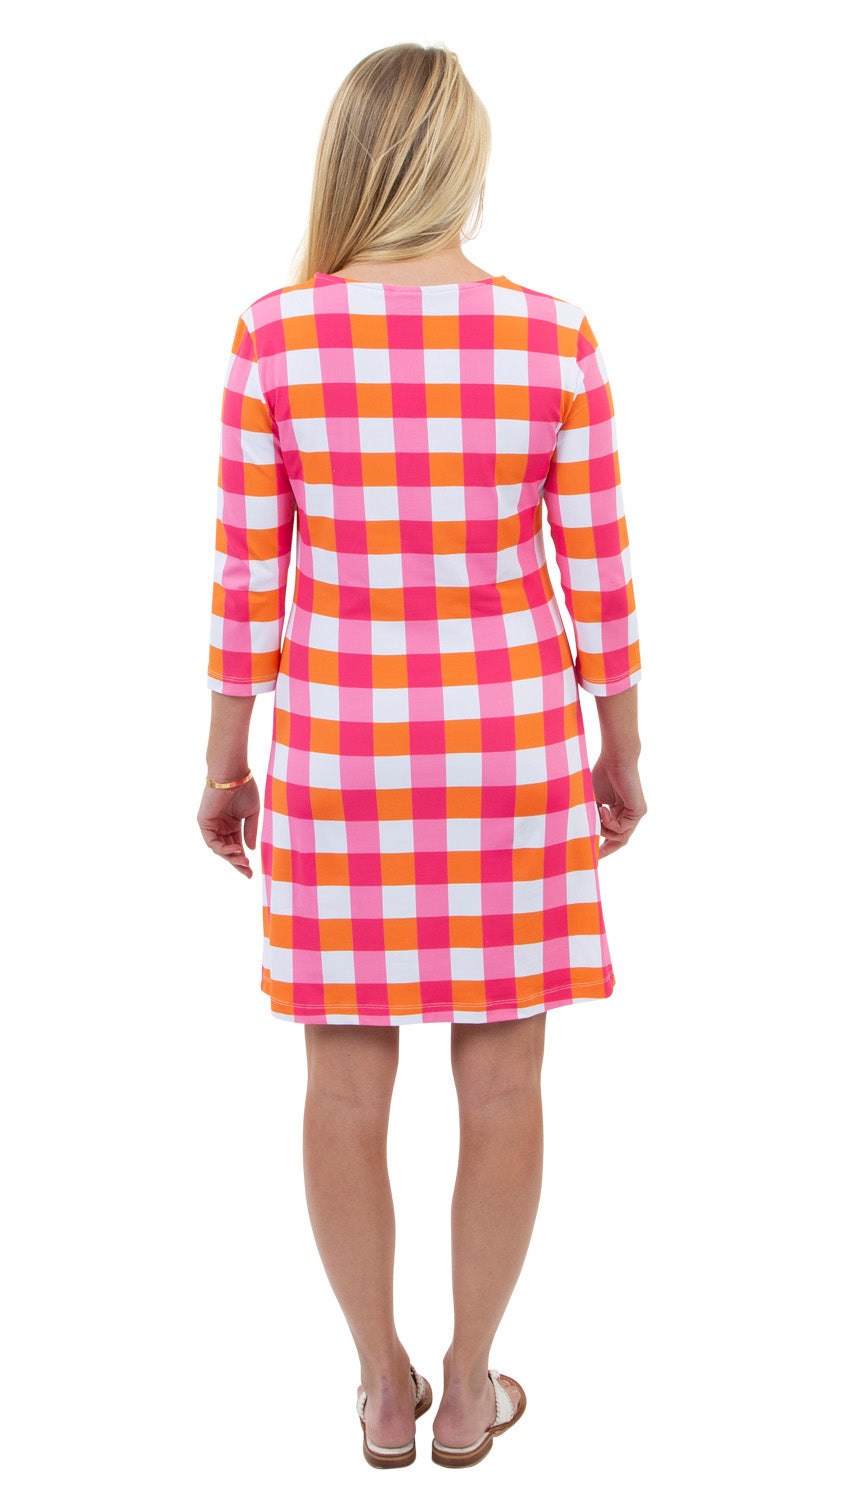 Grace Dress - Chatham Check Pink/Orange - BACK ORDERED 'TIL 4/15